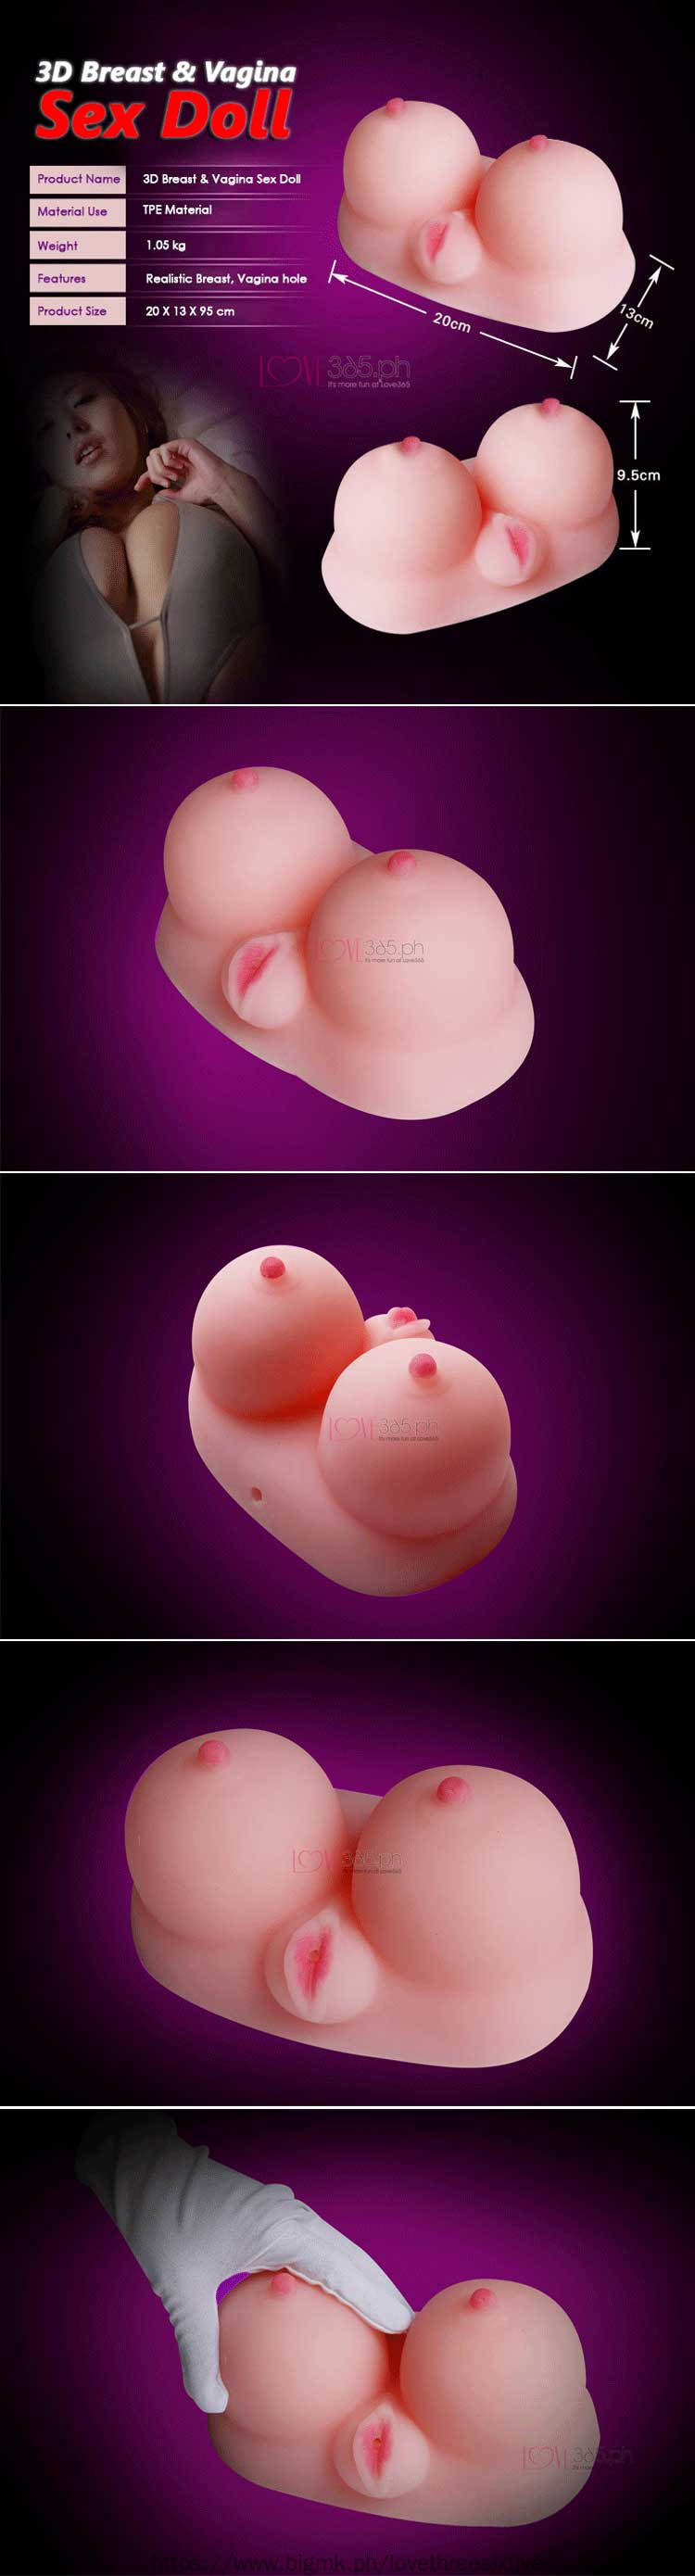 3D-Breast-and-Vagina-Sex-Doll--Collage